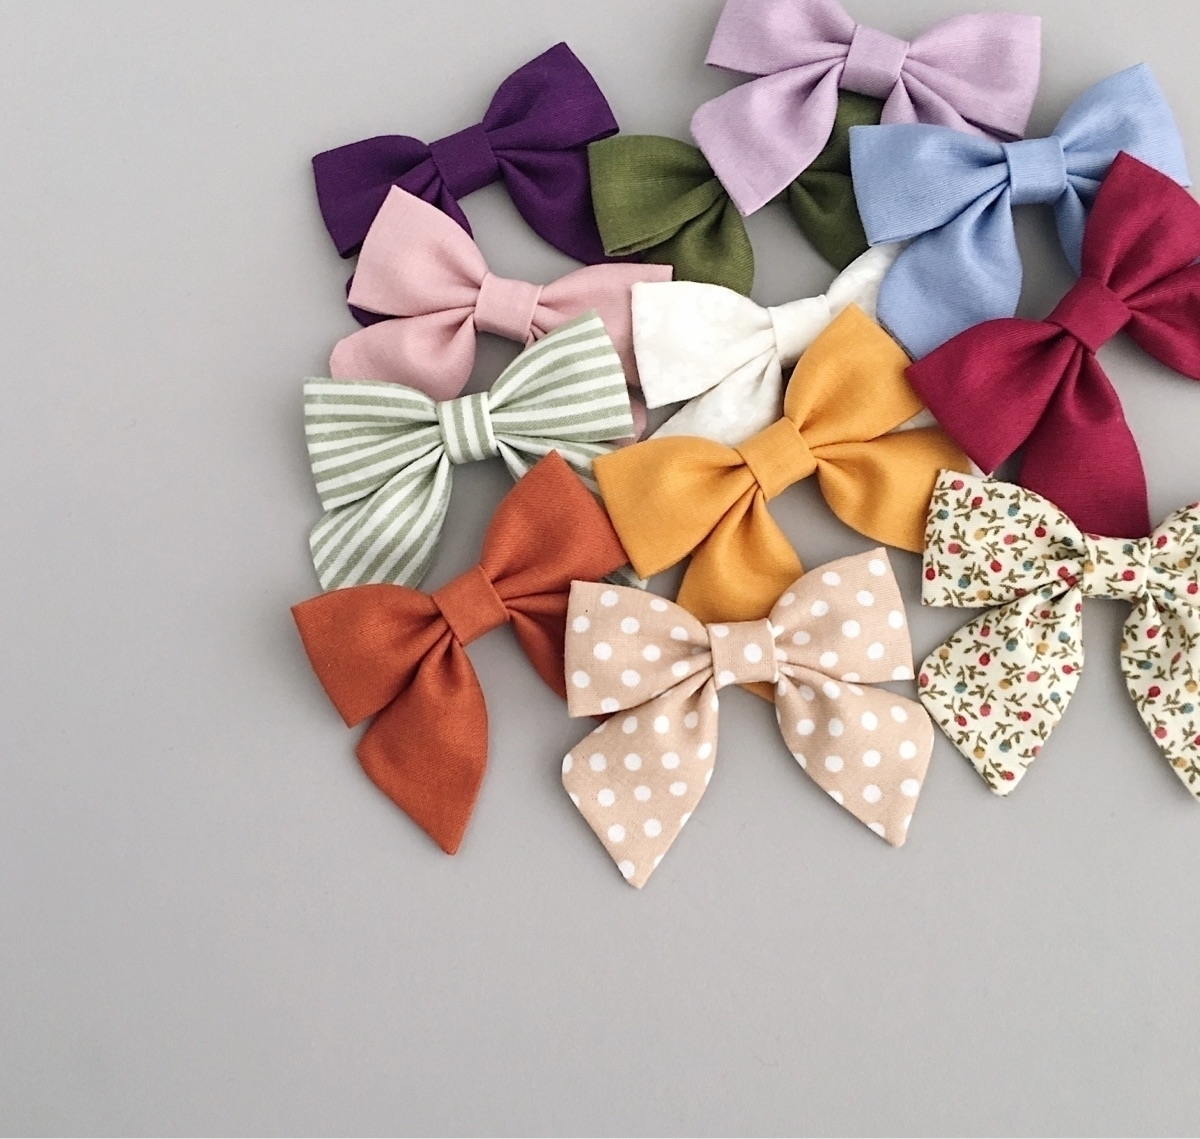 Bow Subscriptions by Tara (@babybowclub) Cover Image